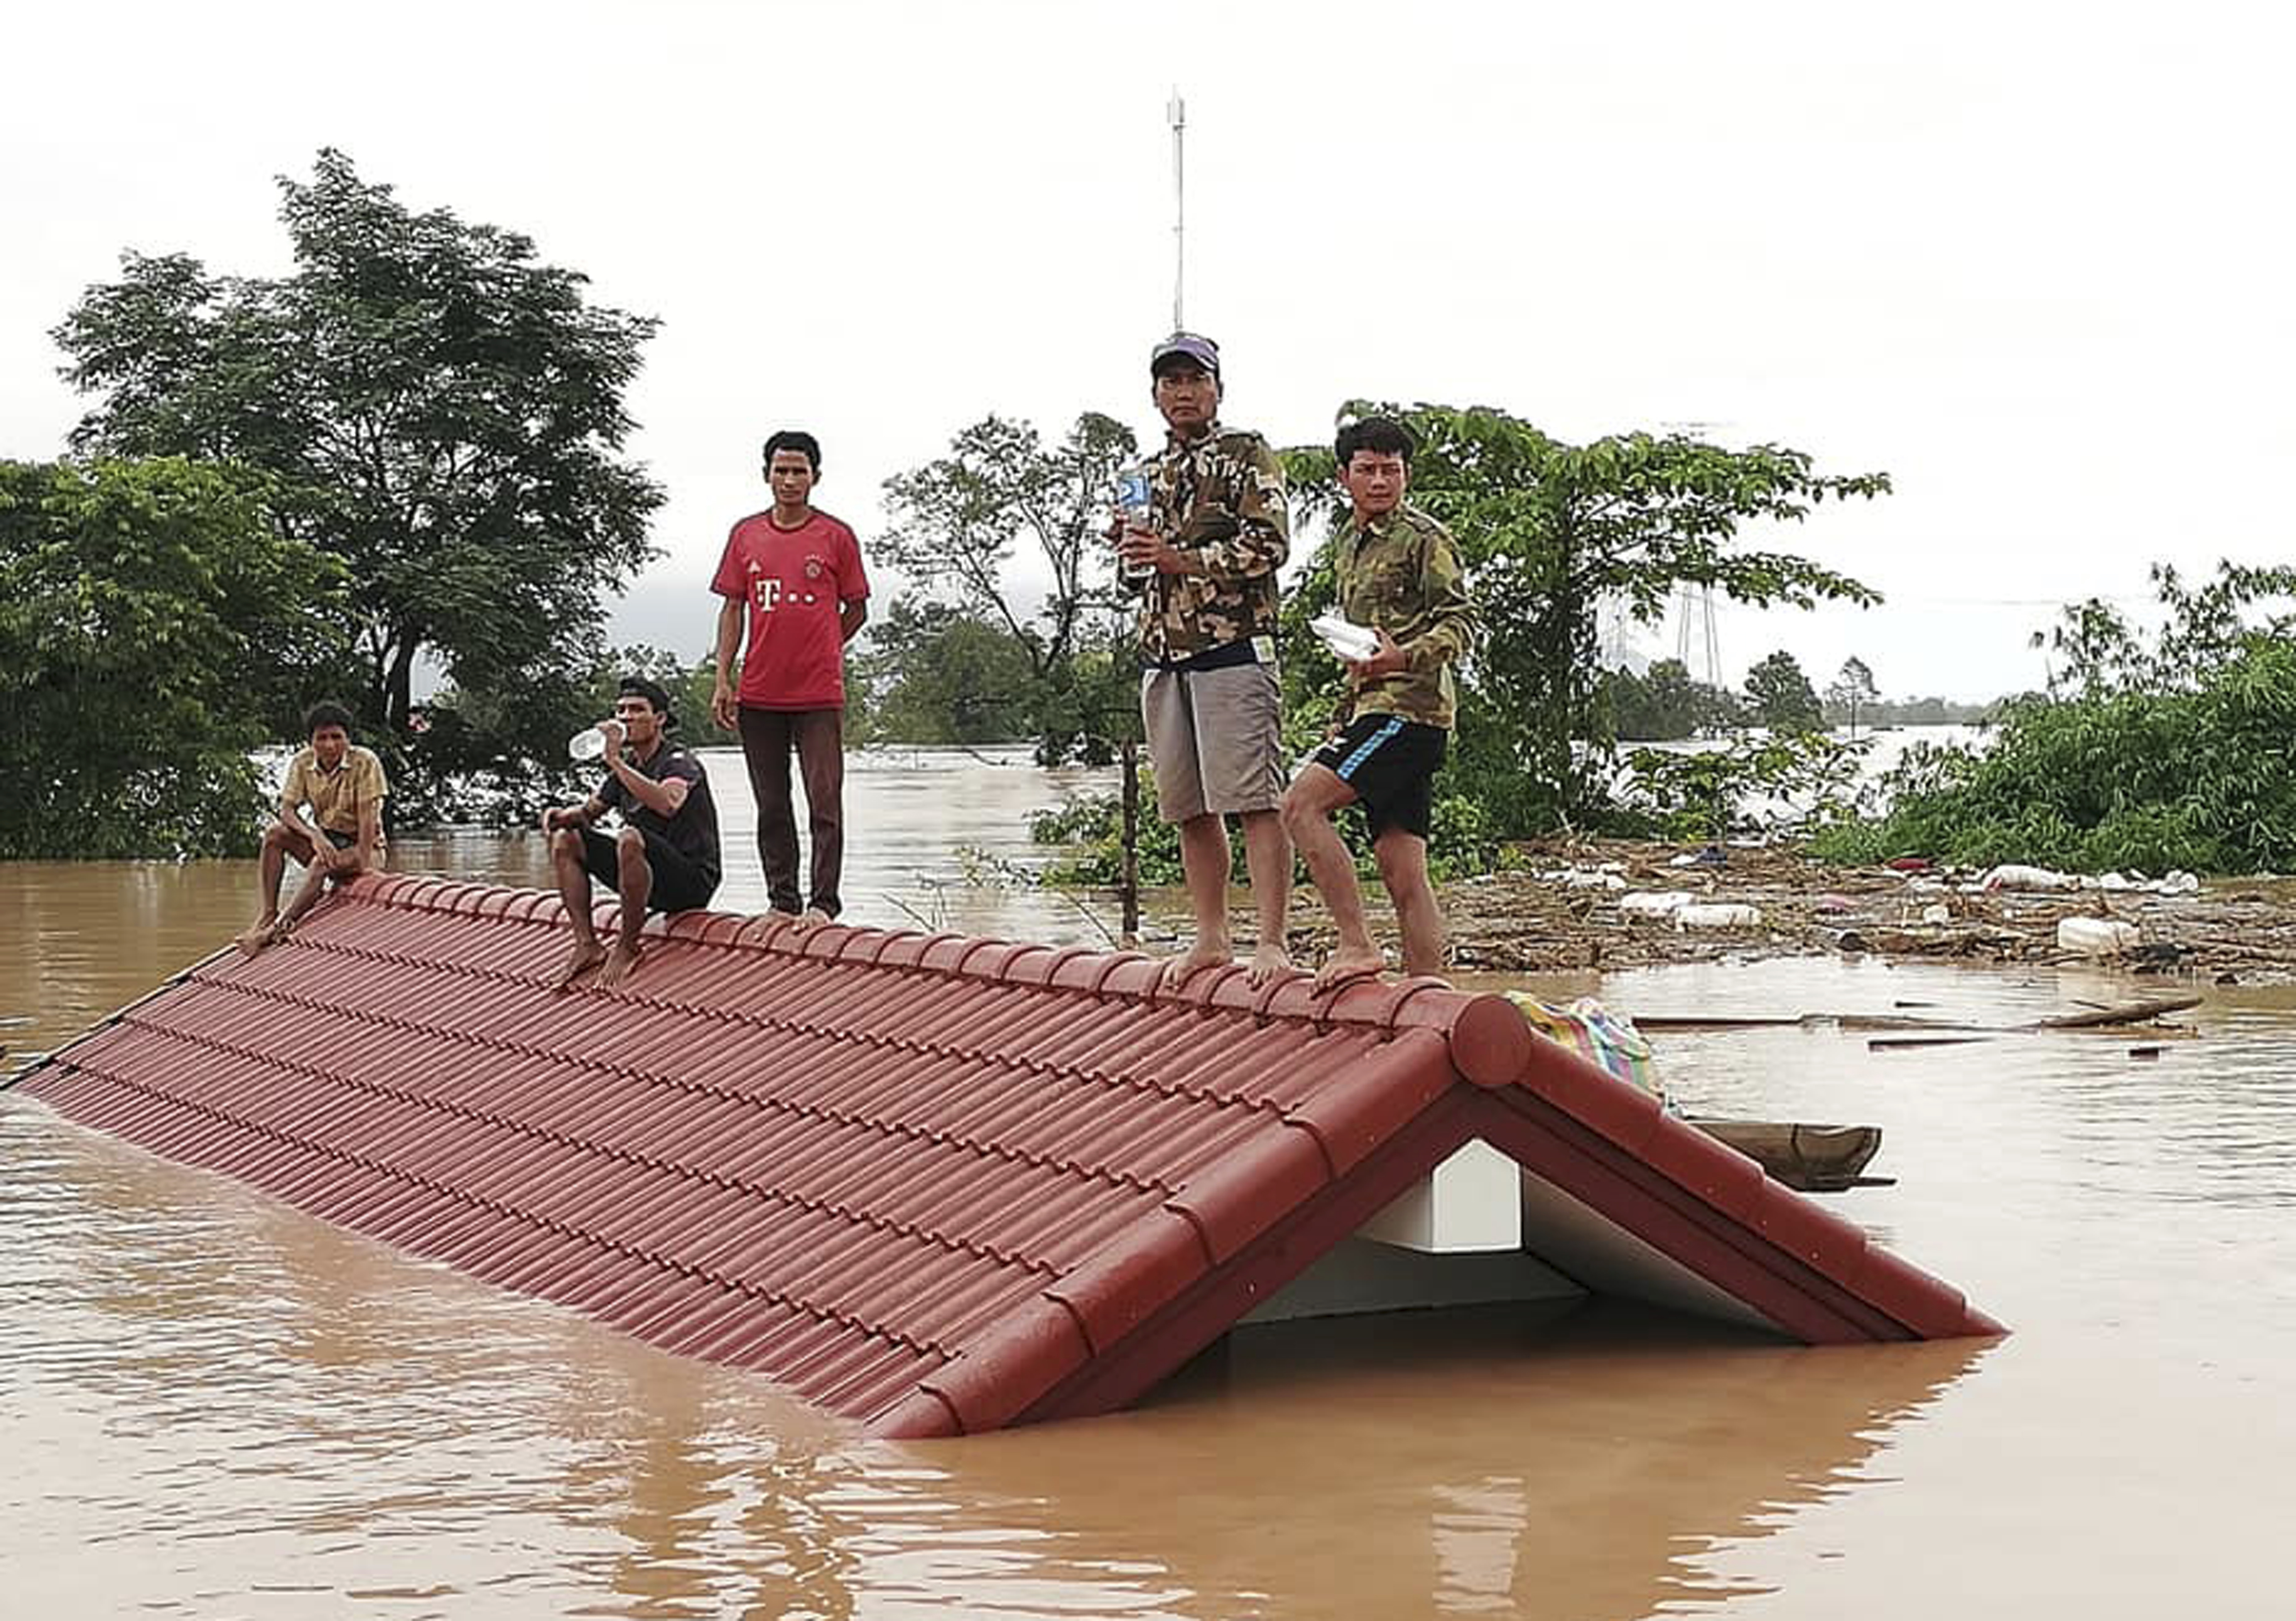 Villagers take refuge on a rooftop above flood waters from a collapsed dam in the Attapeu district of southern Laos, on July 24, 2018.